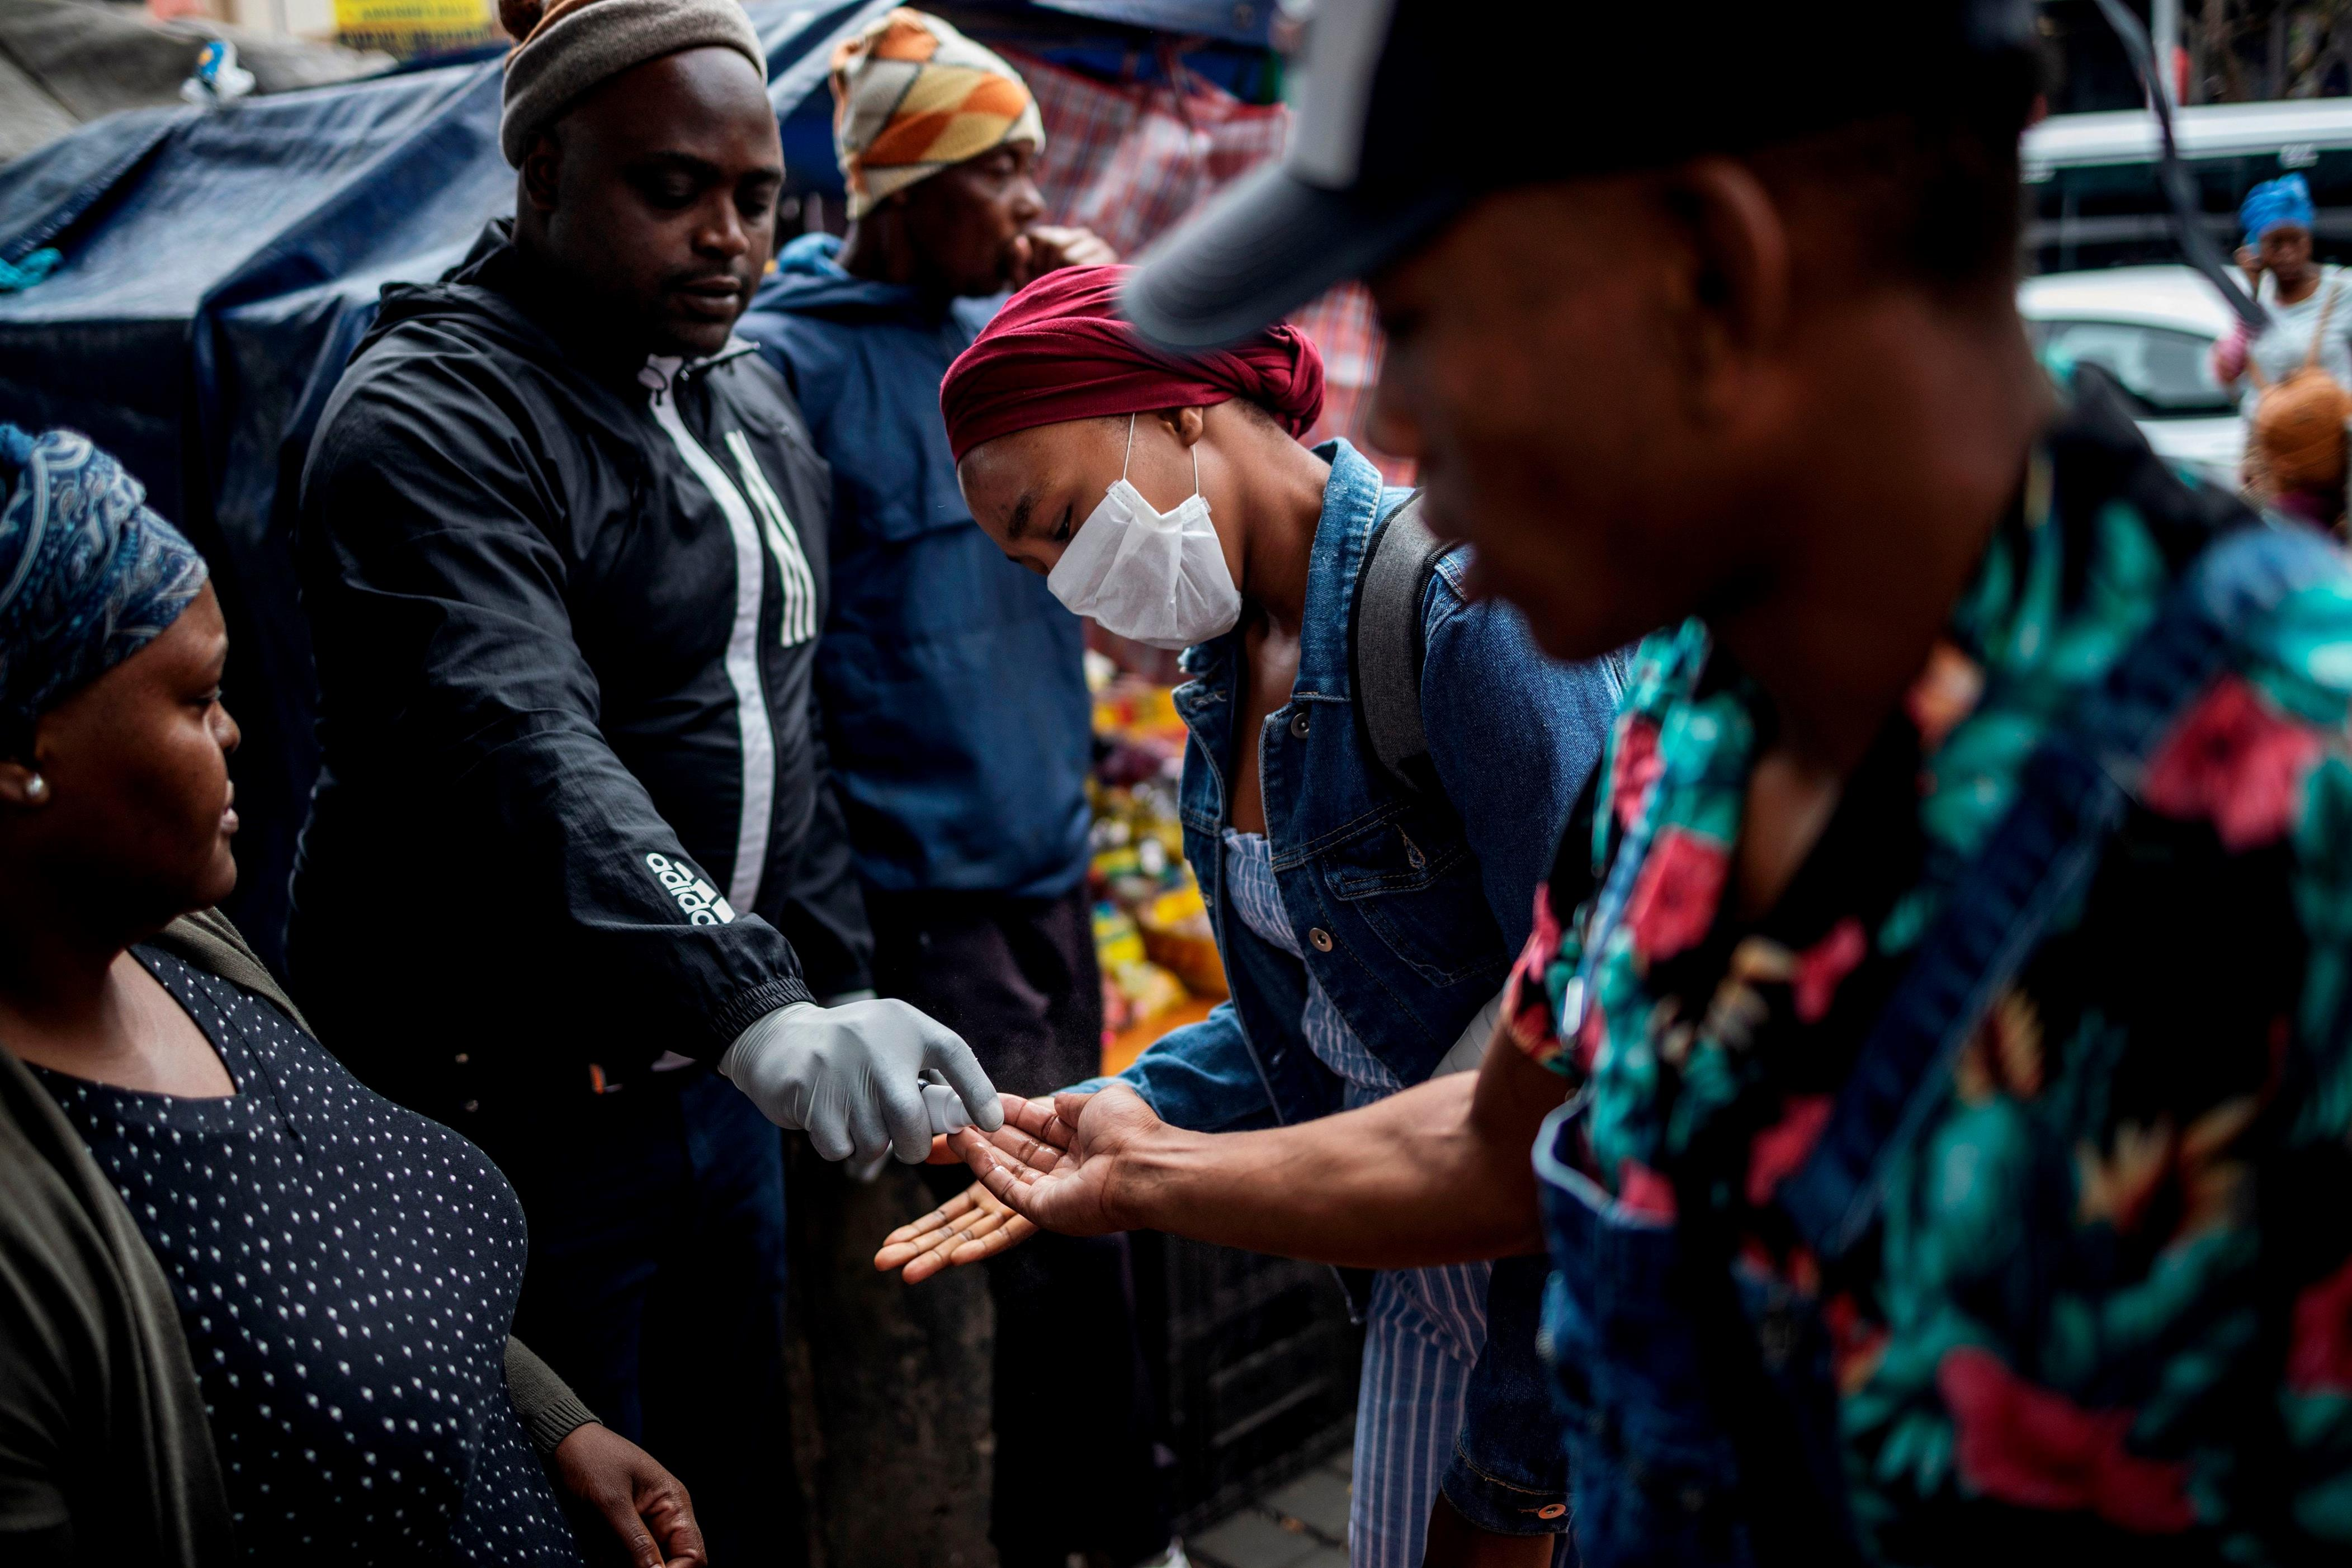 Slide 57 of 113: A man sprays commuters with hand sanitizer as a preventive measures in Johannesburg, South Africa on March 18, 2020. African countries have been among the last to be hit by the global COVID-19 coronavirus epidemic but as cases rise, many nations are now taking strict measures to block the deadly illness.